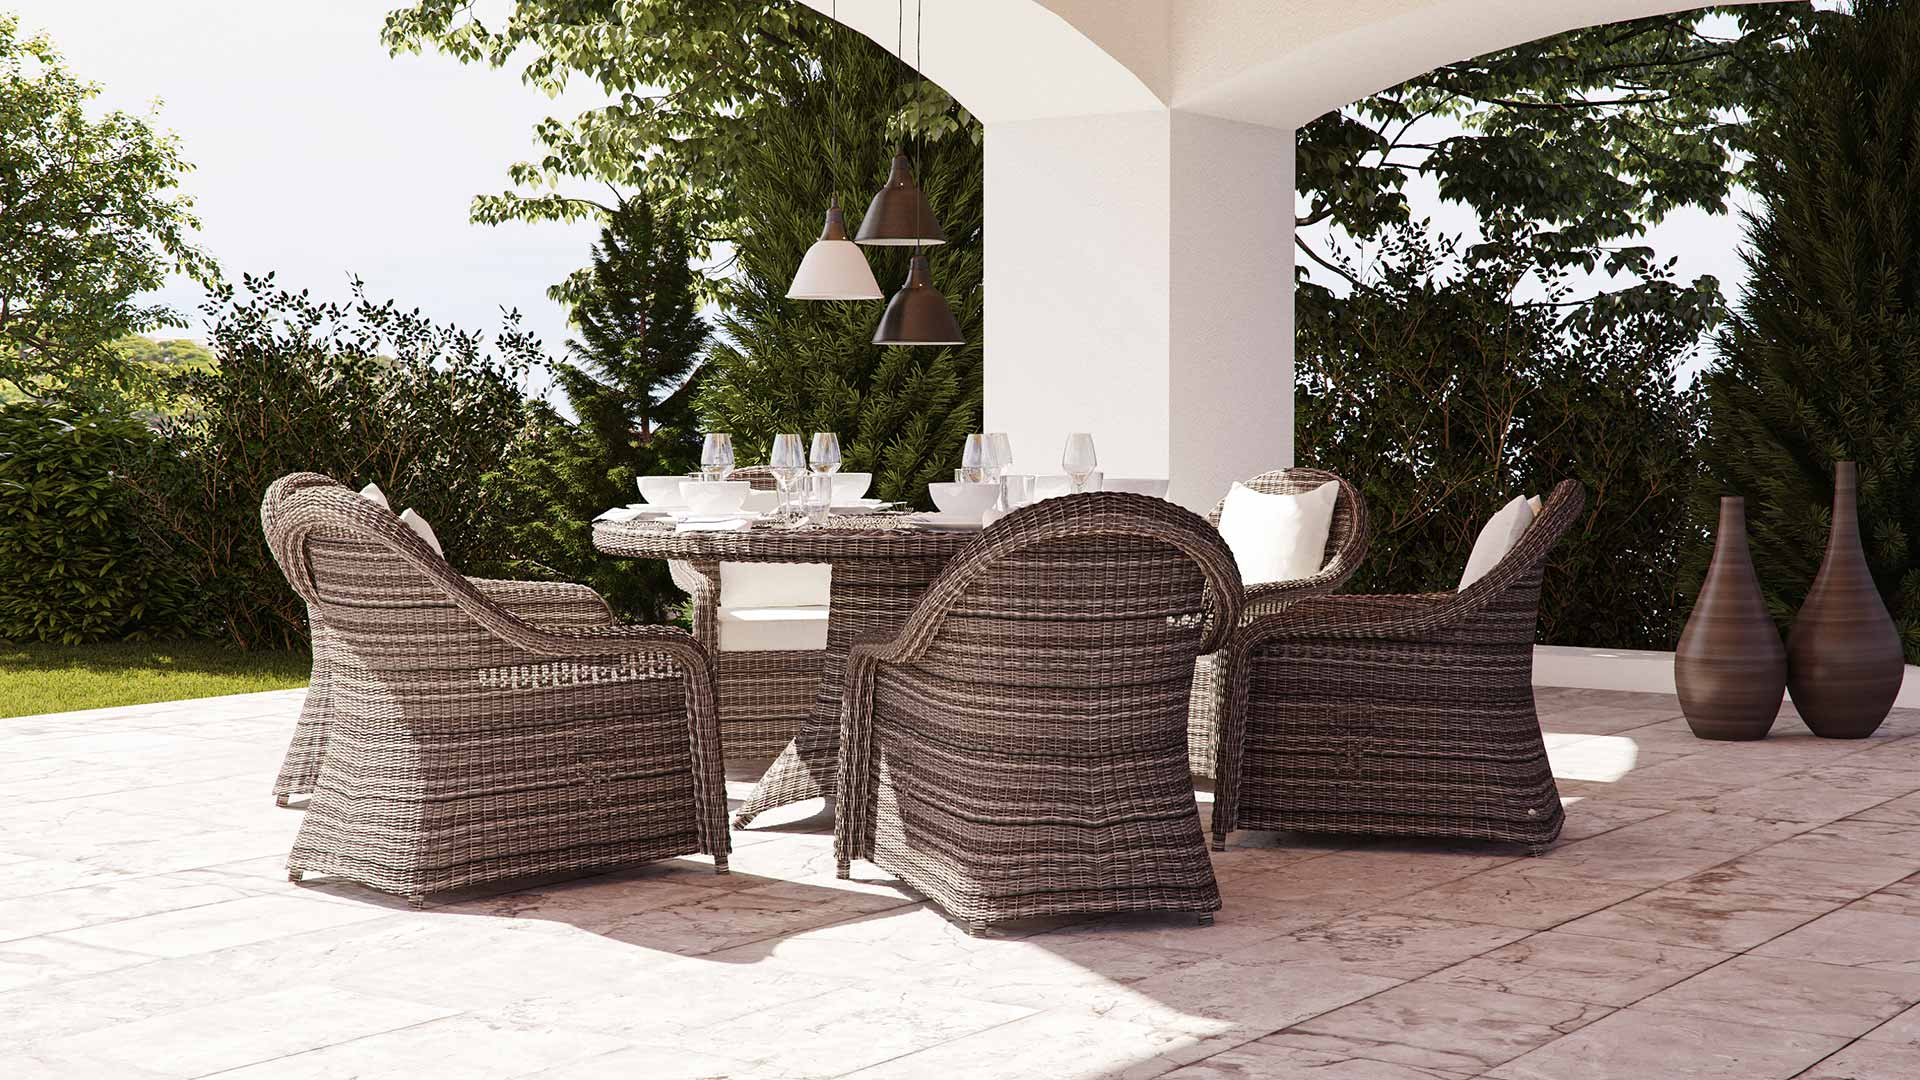 artelia rattan essgruppe f r 6 personen mit tisch und st hlen aus polyrattan. Black Bedroom Furniture Sets. Home Design Ideas